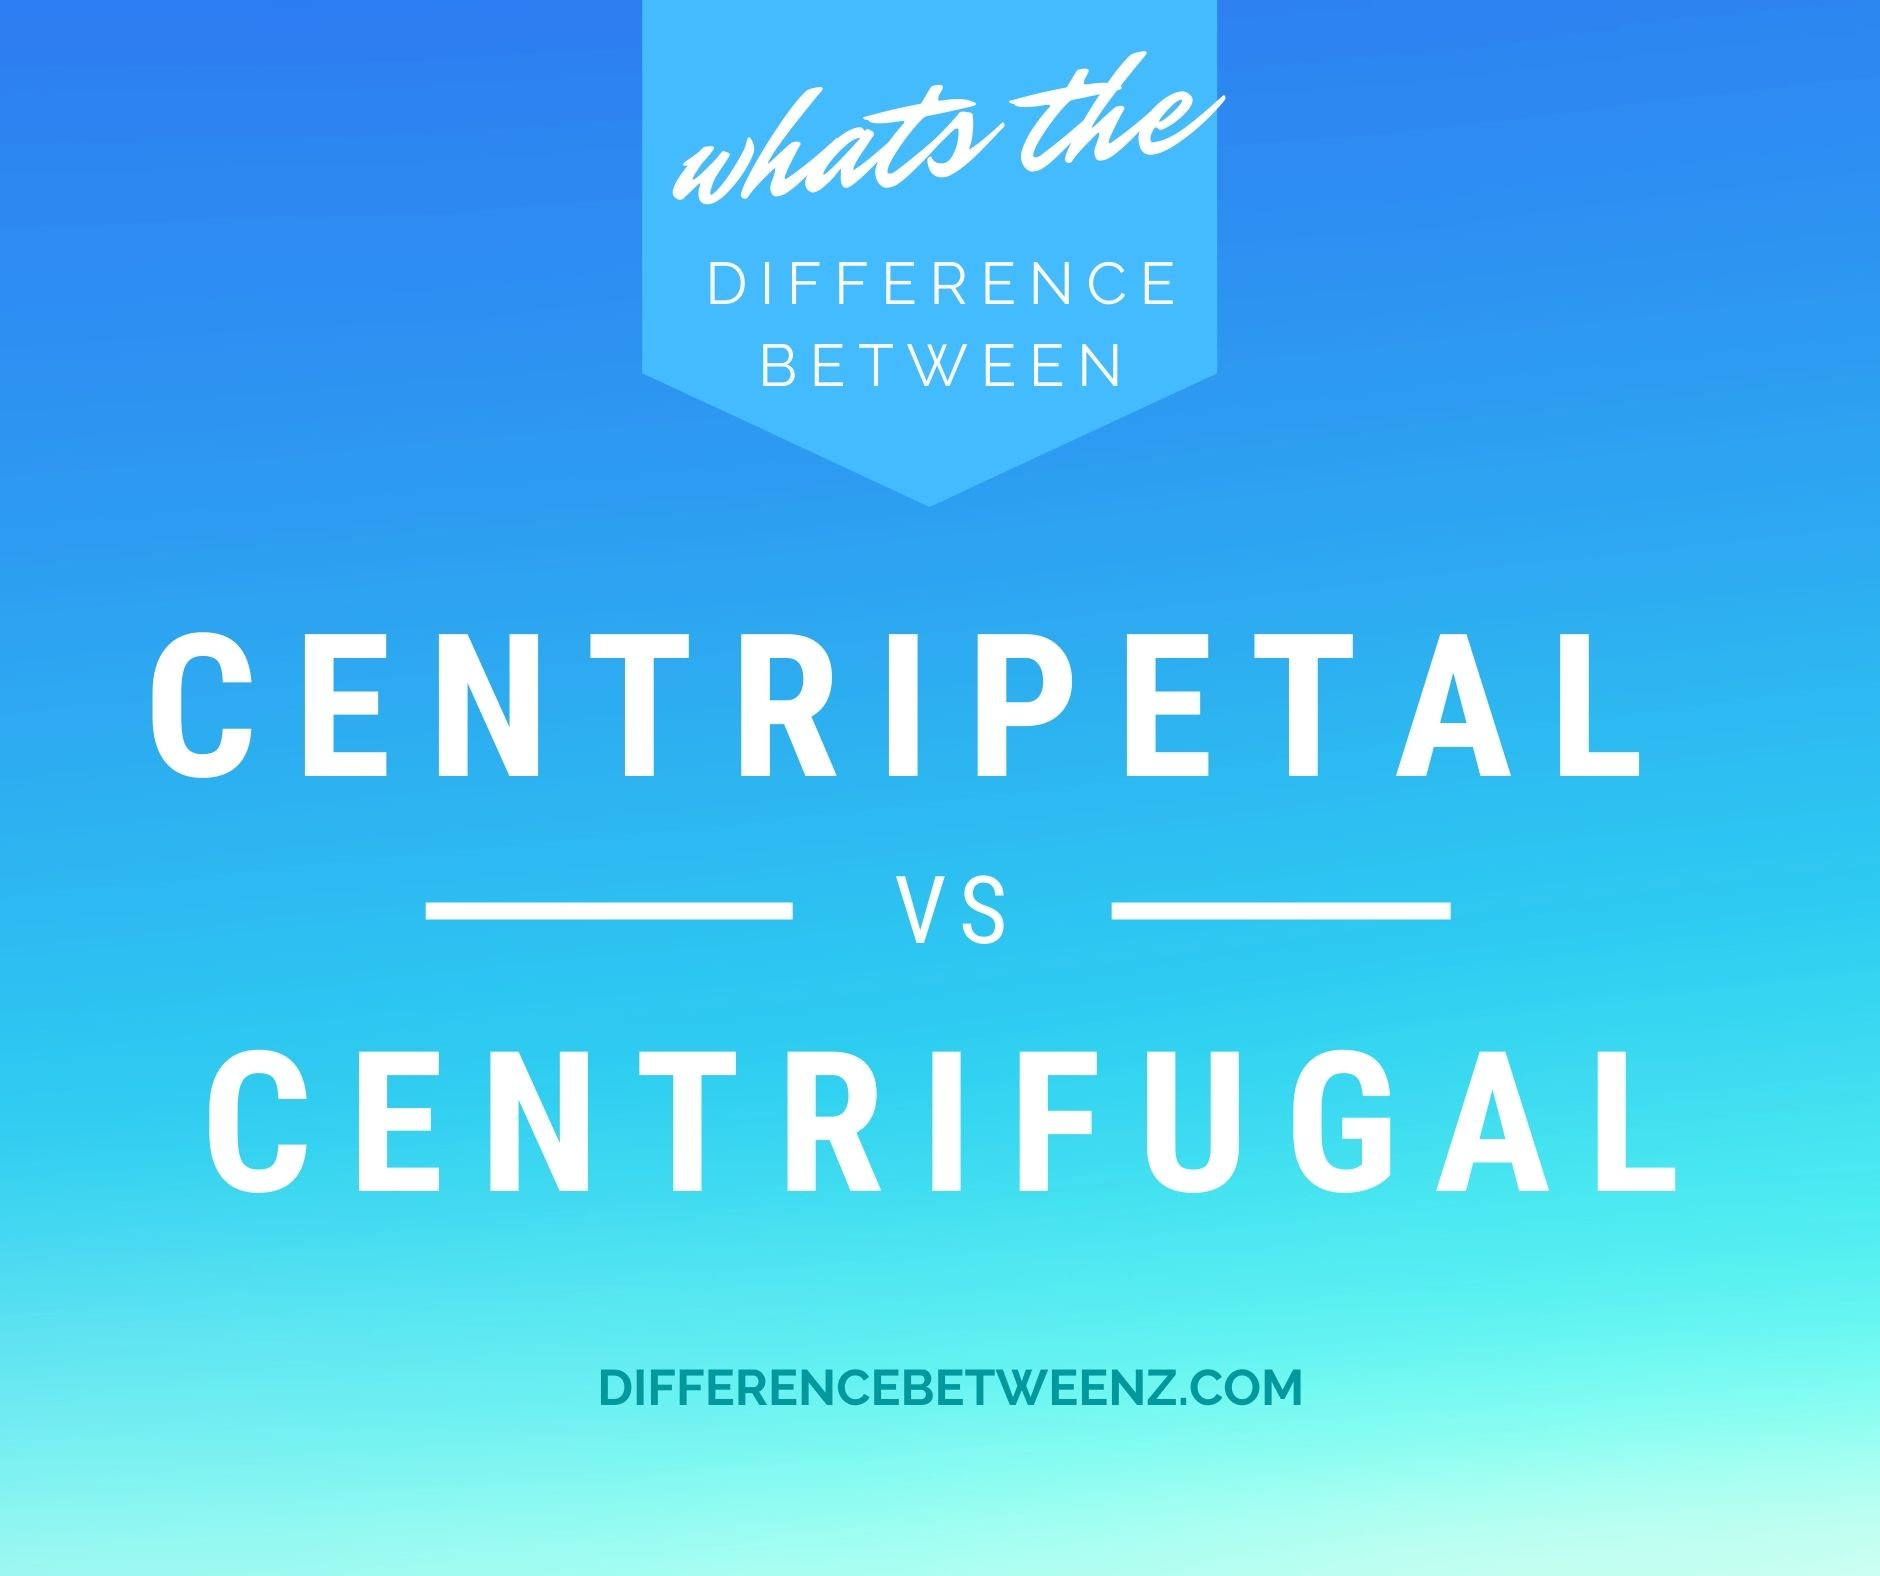 Difference between Centripetal and Centrifugal Force